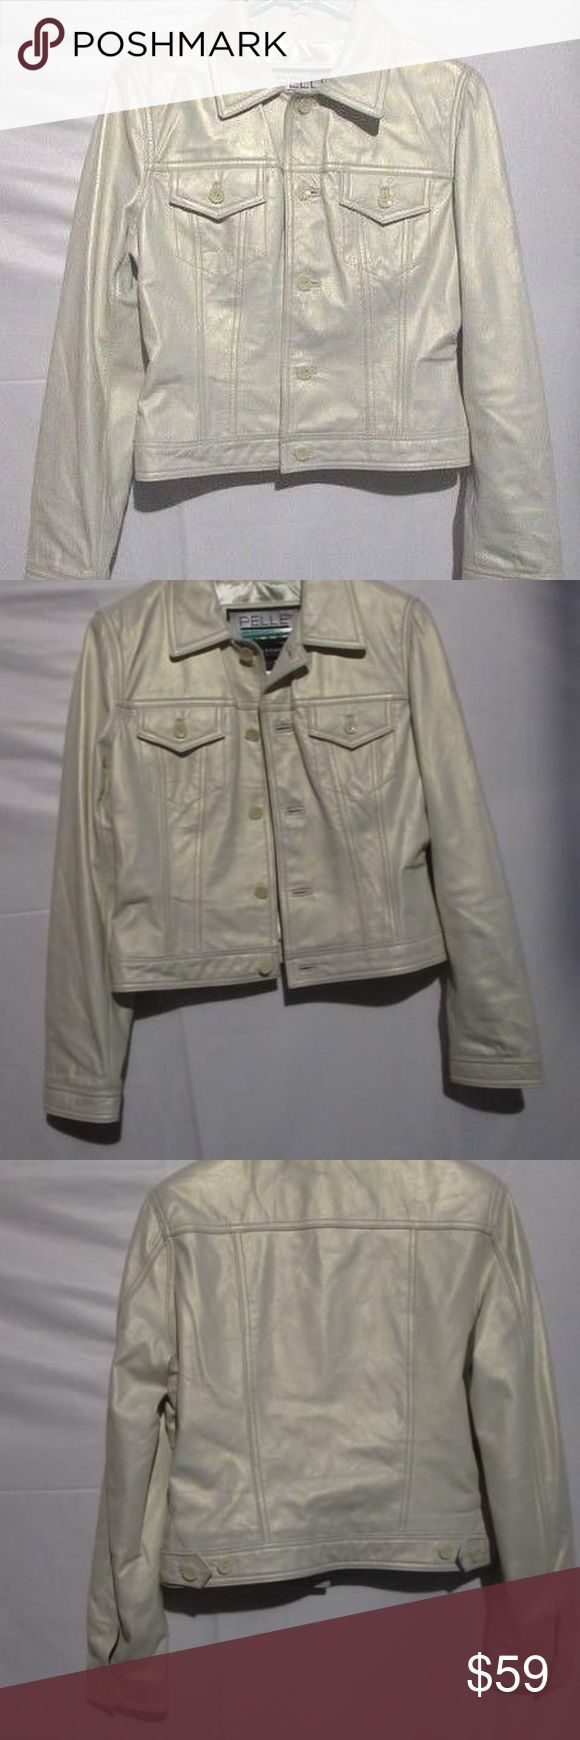 Wilsons Leather Pelle Studio Pearl White Jacket Wilsons